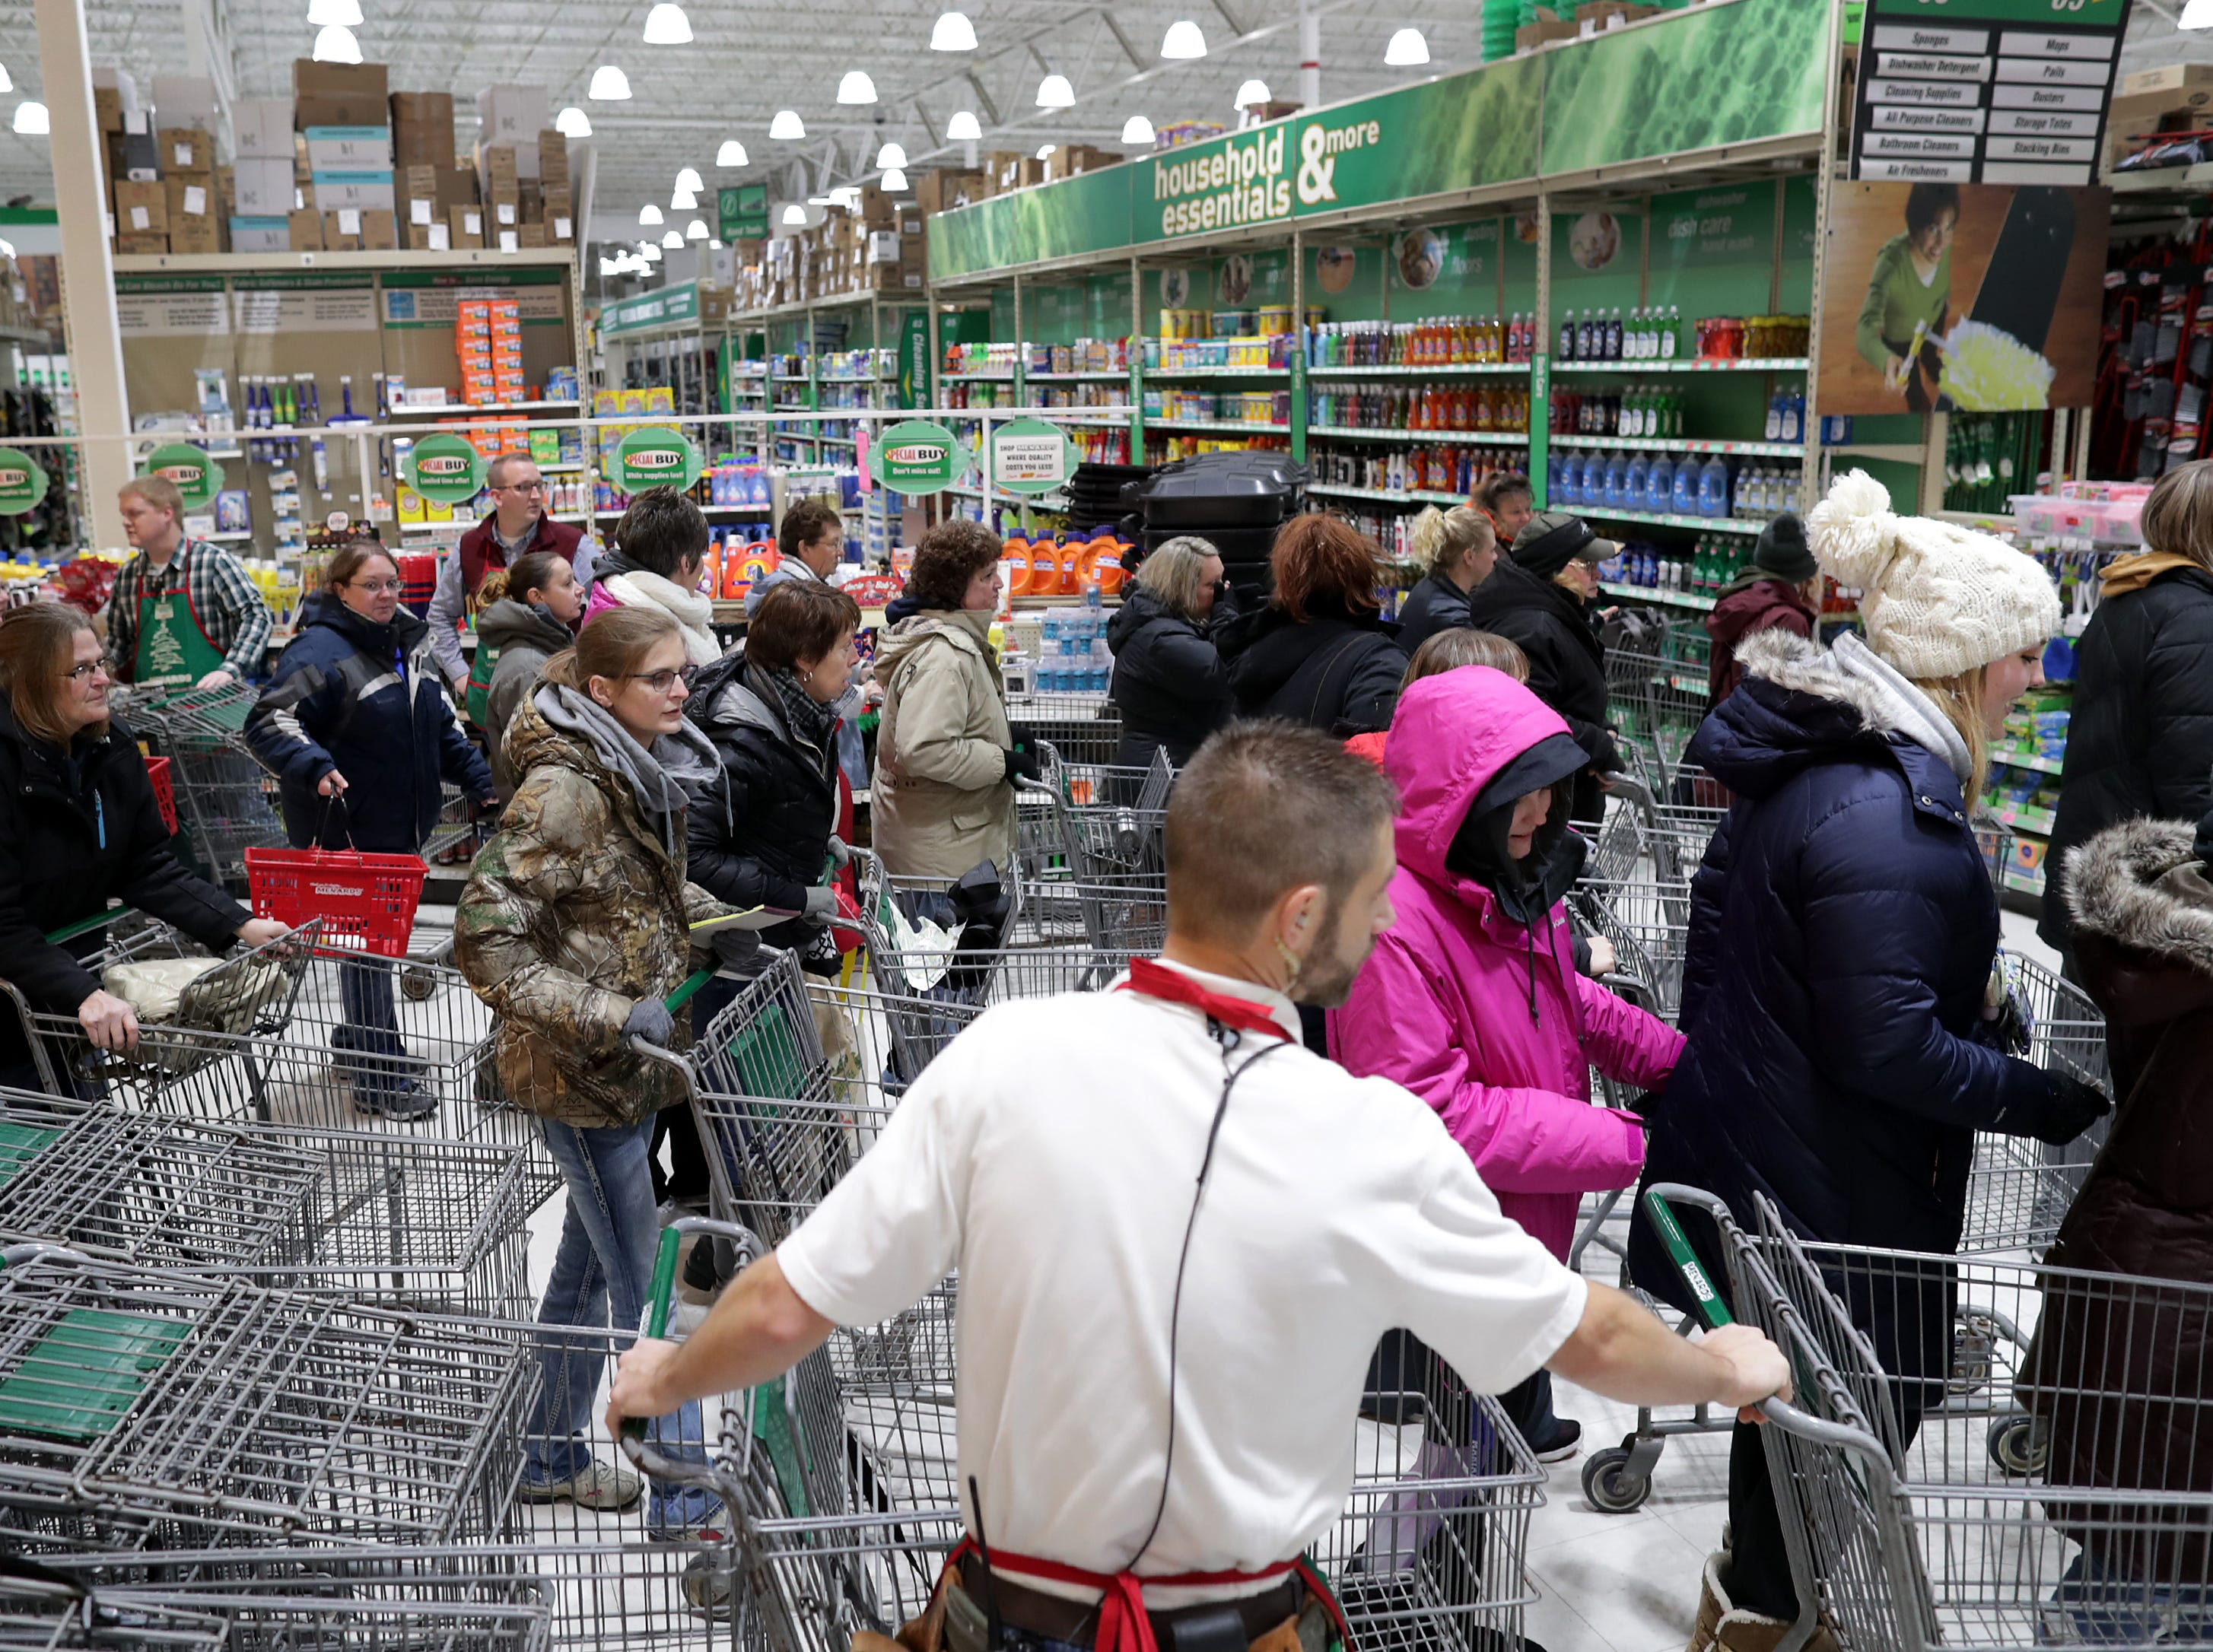 Shoppers looking for Black Friday deals stream through the doors at Menards on Friday, Nov. 23, 2018 in Grand Chute, Wis